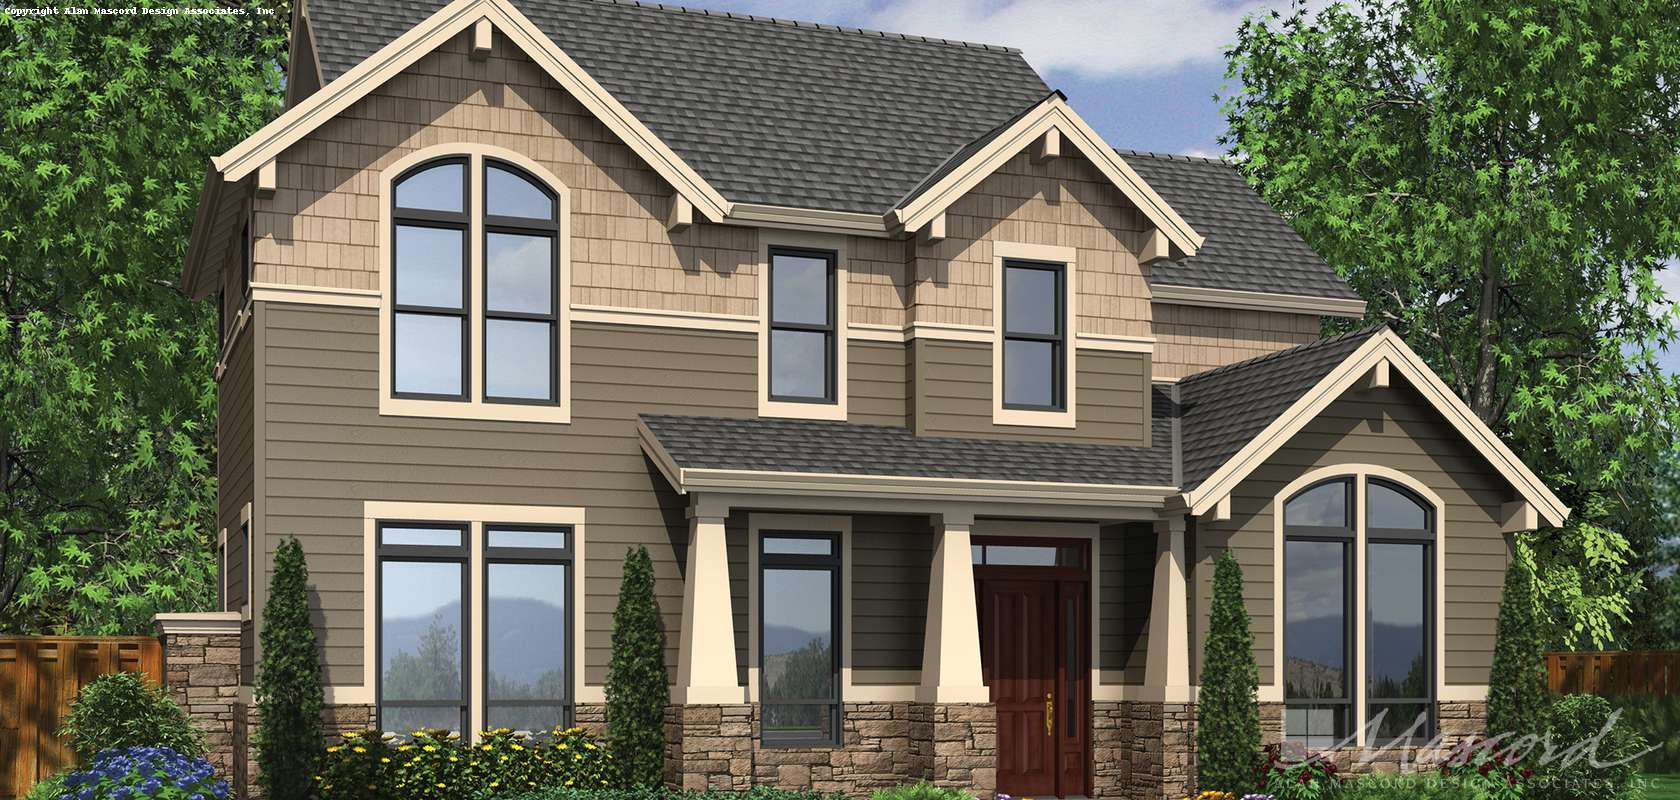 Mascord House Plan 22170: The Mayfield